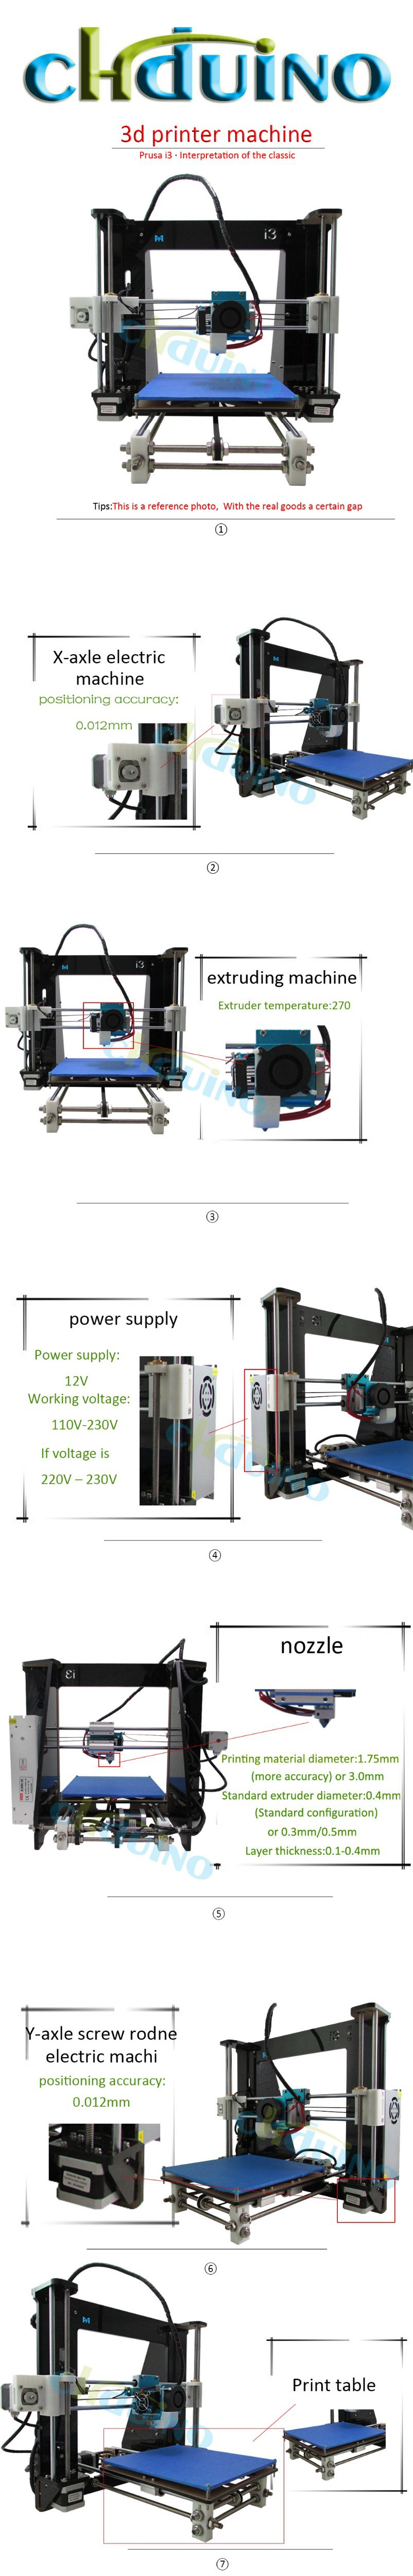 Desktop Acrylic Frame High Precision Lcd Prusa I3 3d Printer Machine Stable Filament Supply We Will Send You Two Rolls Of Pla Once Place Order Is Extracted From Corn It And Environmental